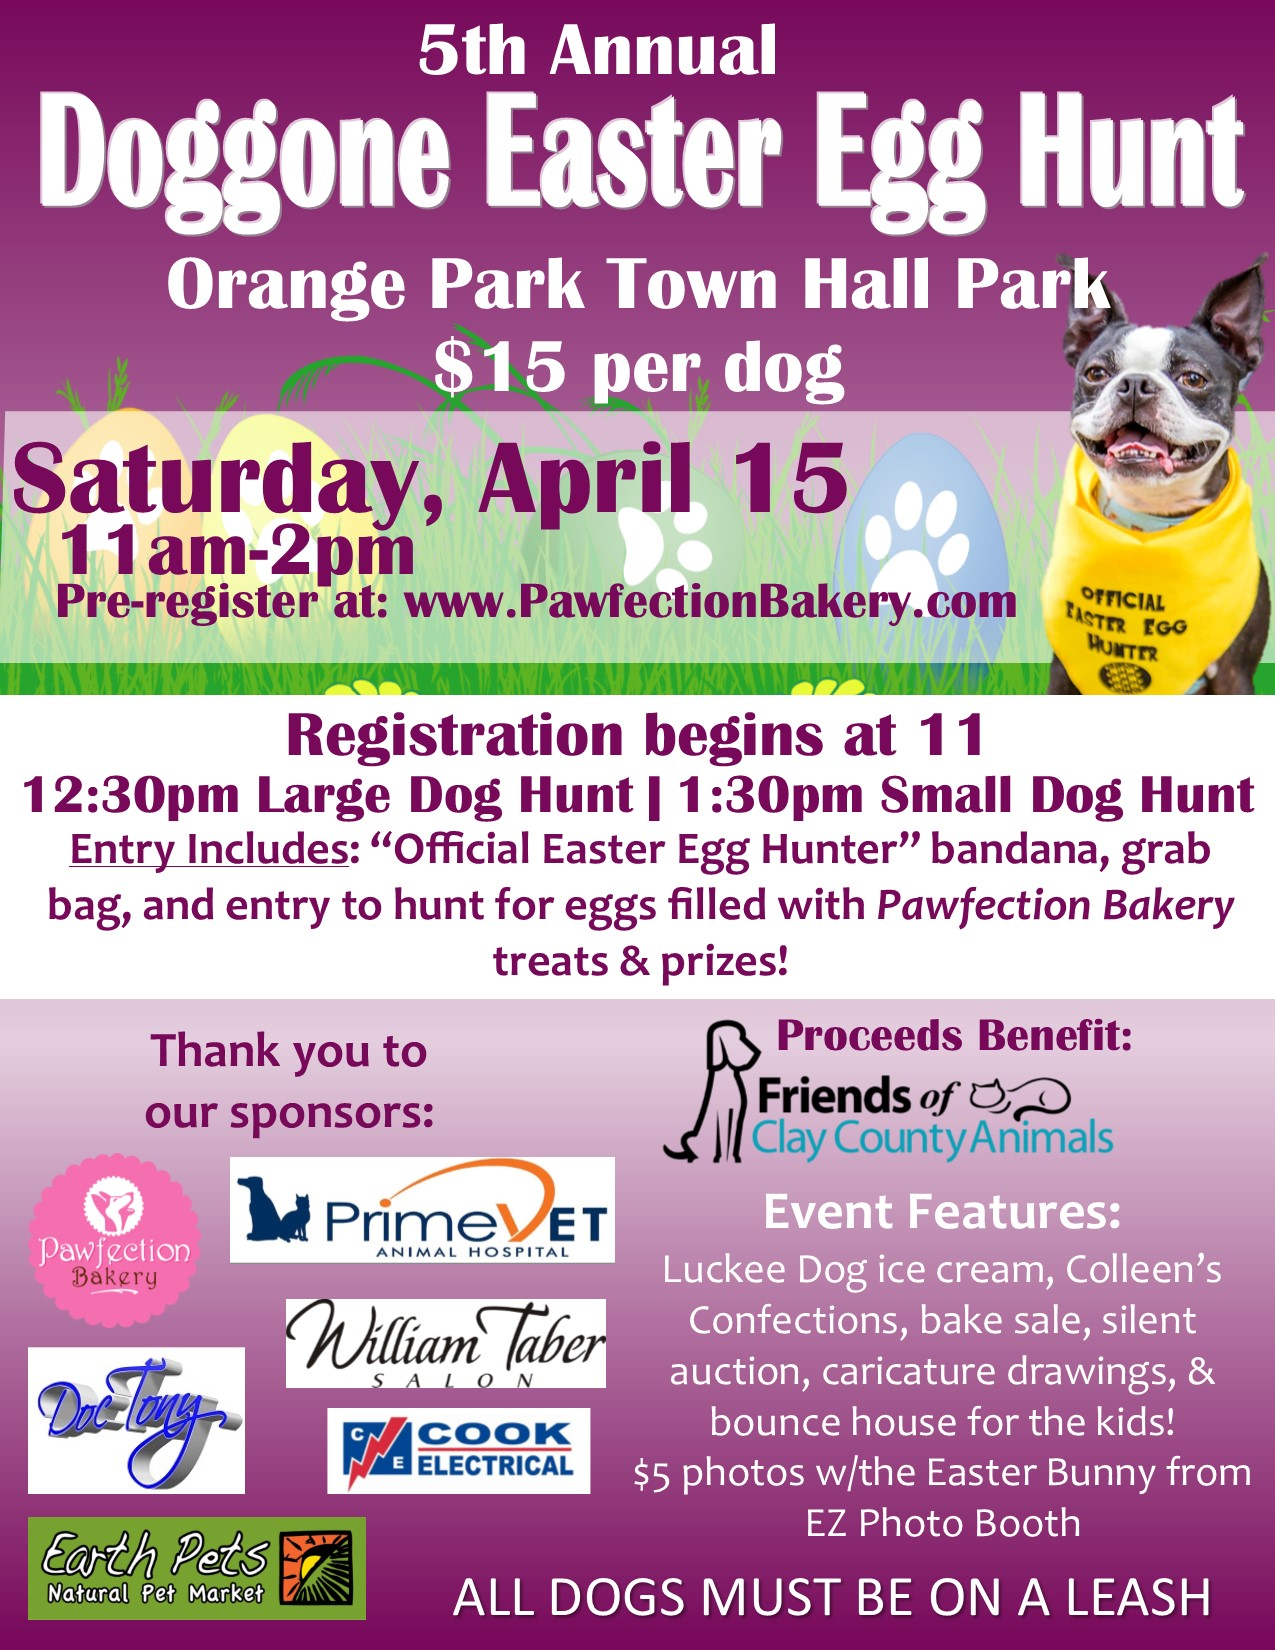 The 5Th Annual Doggone Easter Egg Hunt